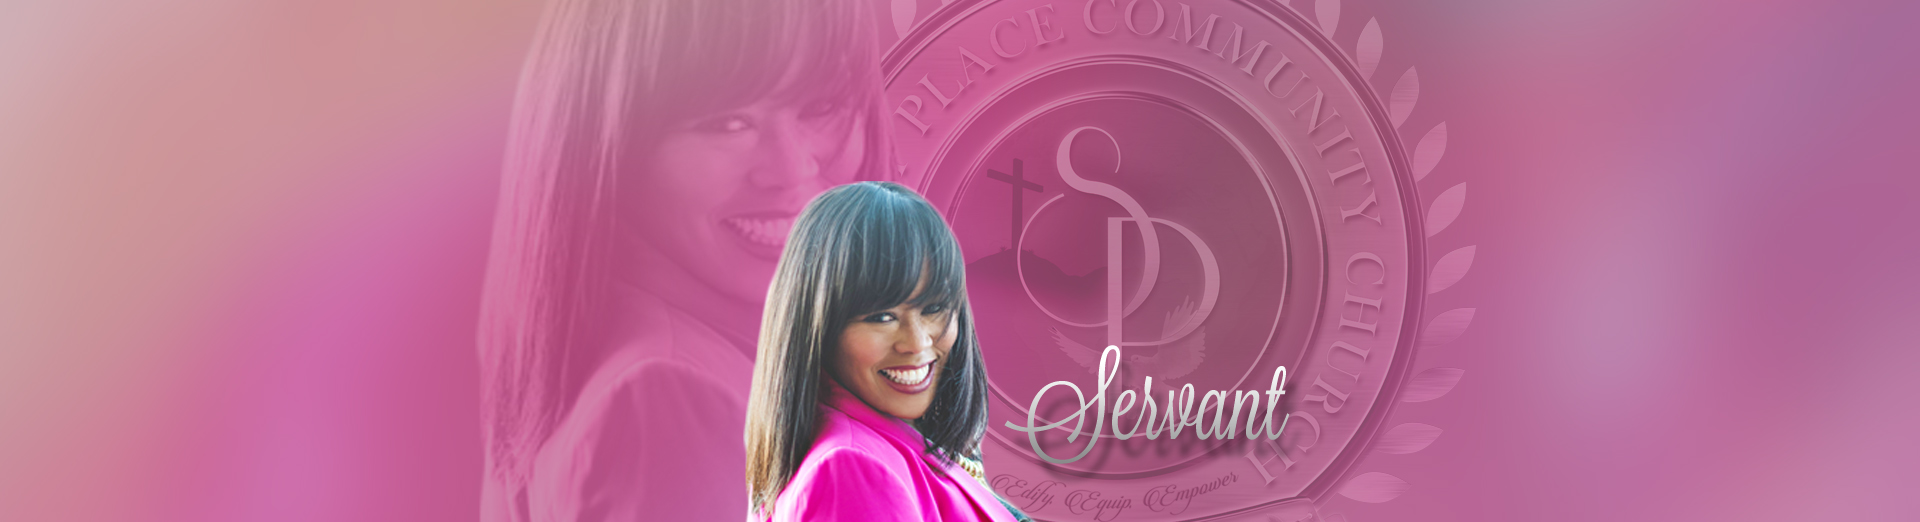 ilinda jackson website header 3